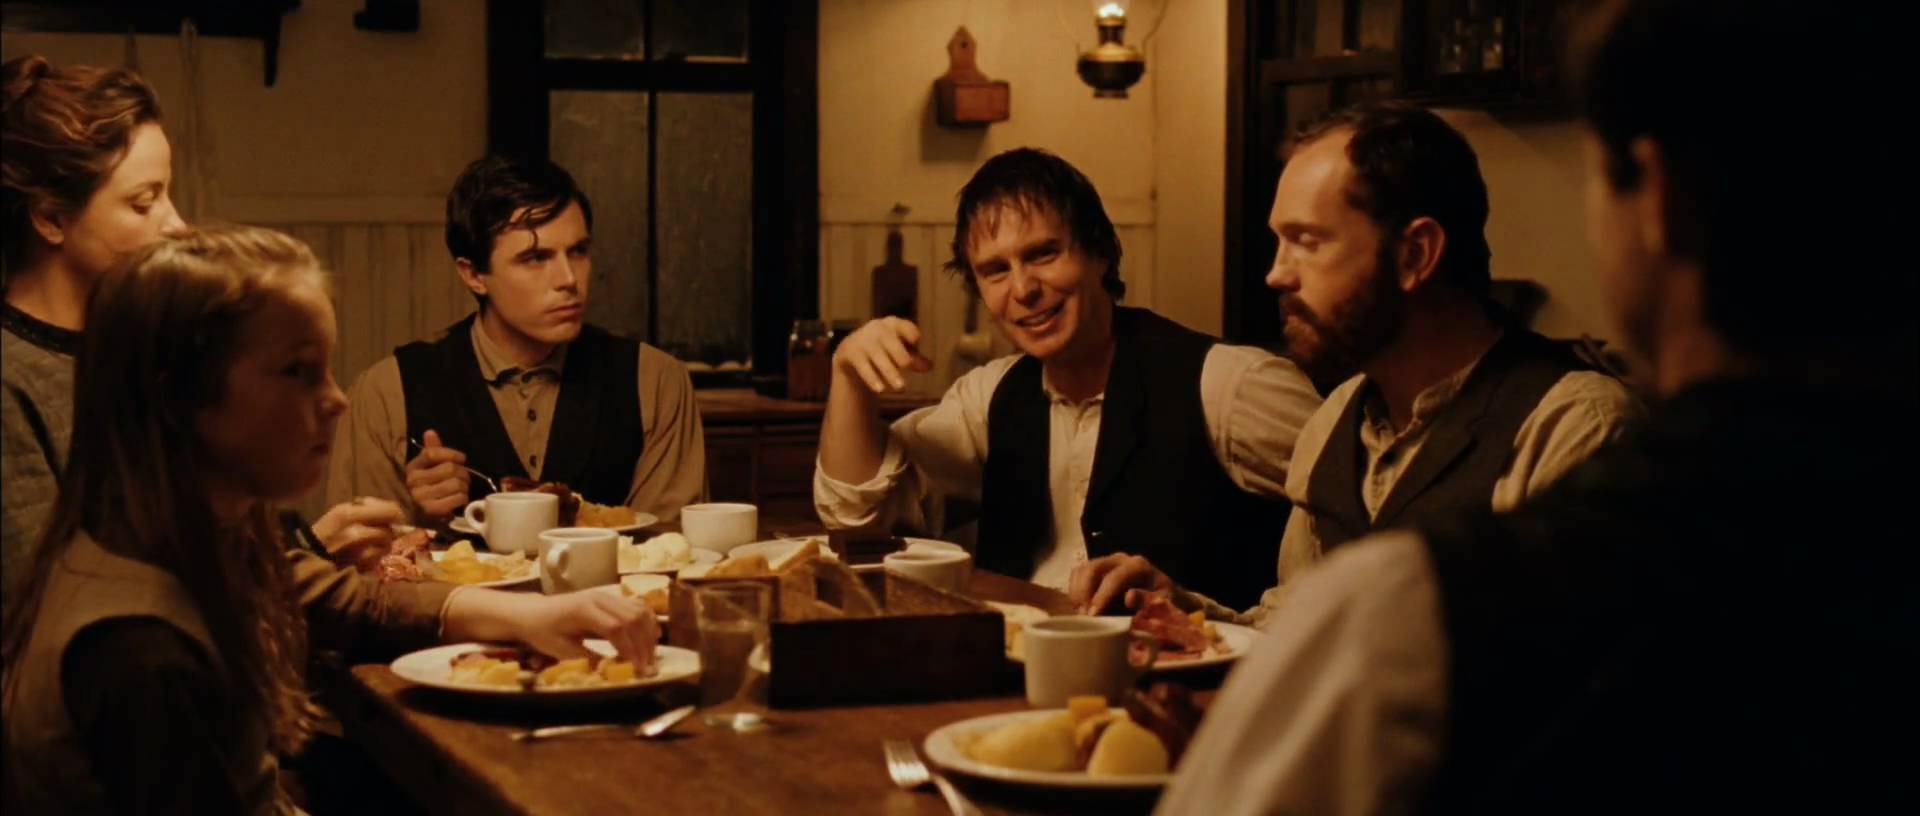 the-assassination-of-jesse-james-by-the-coward-robert-ford-dinner-scene